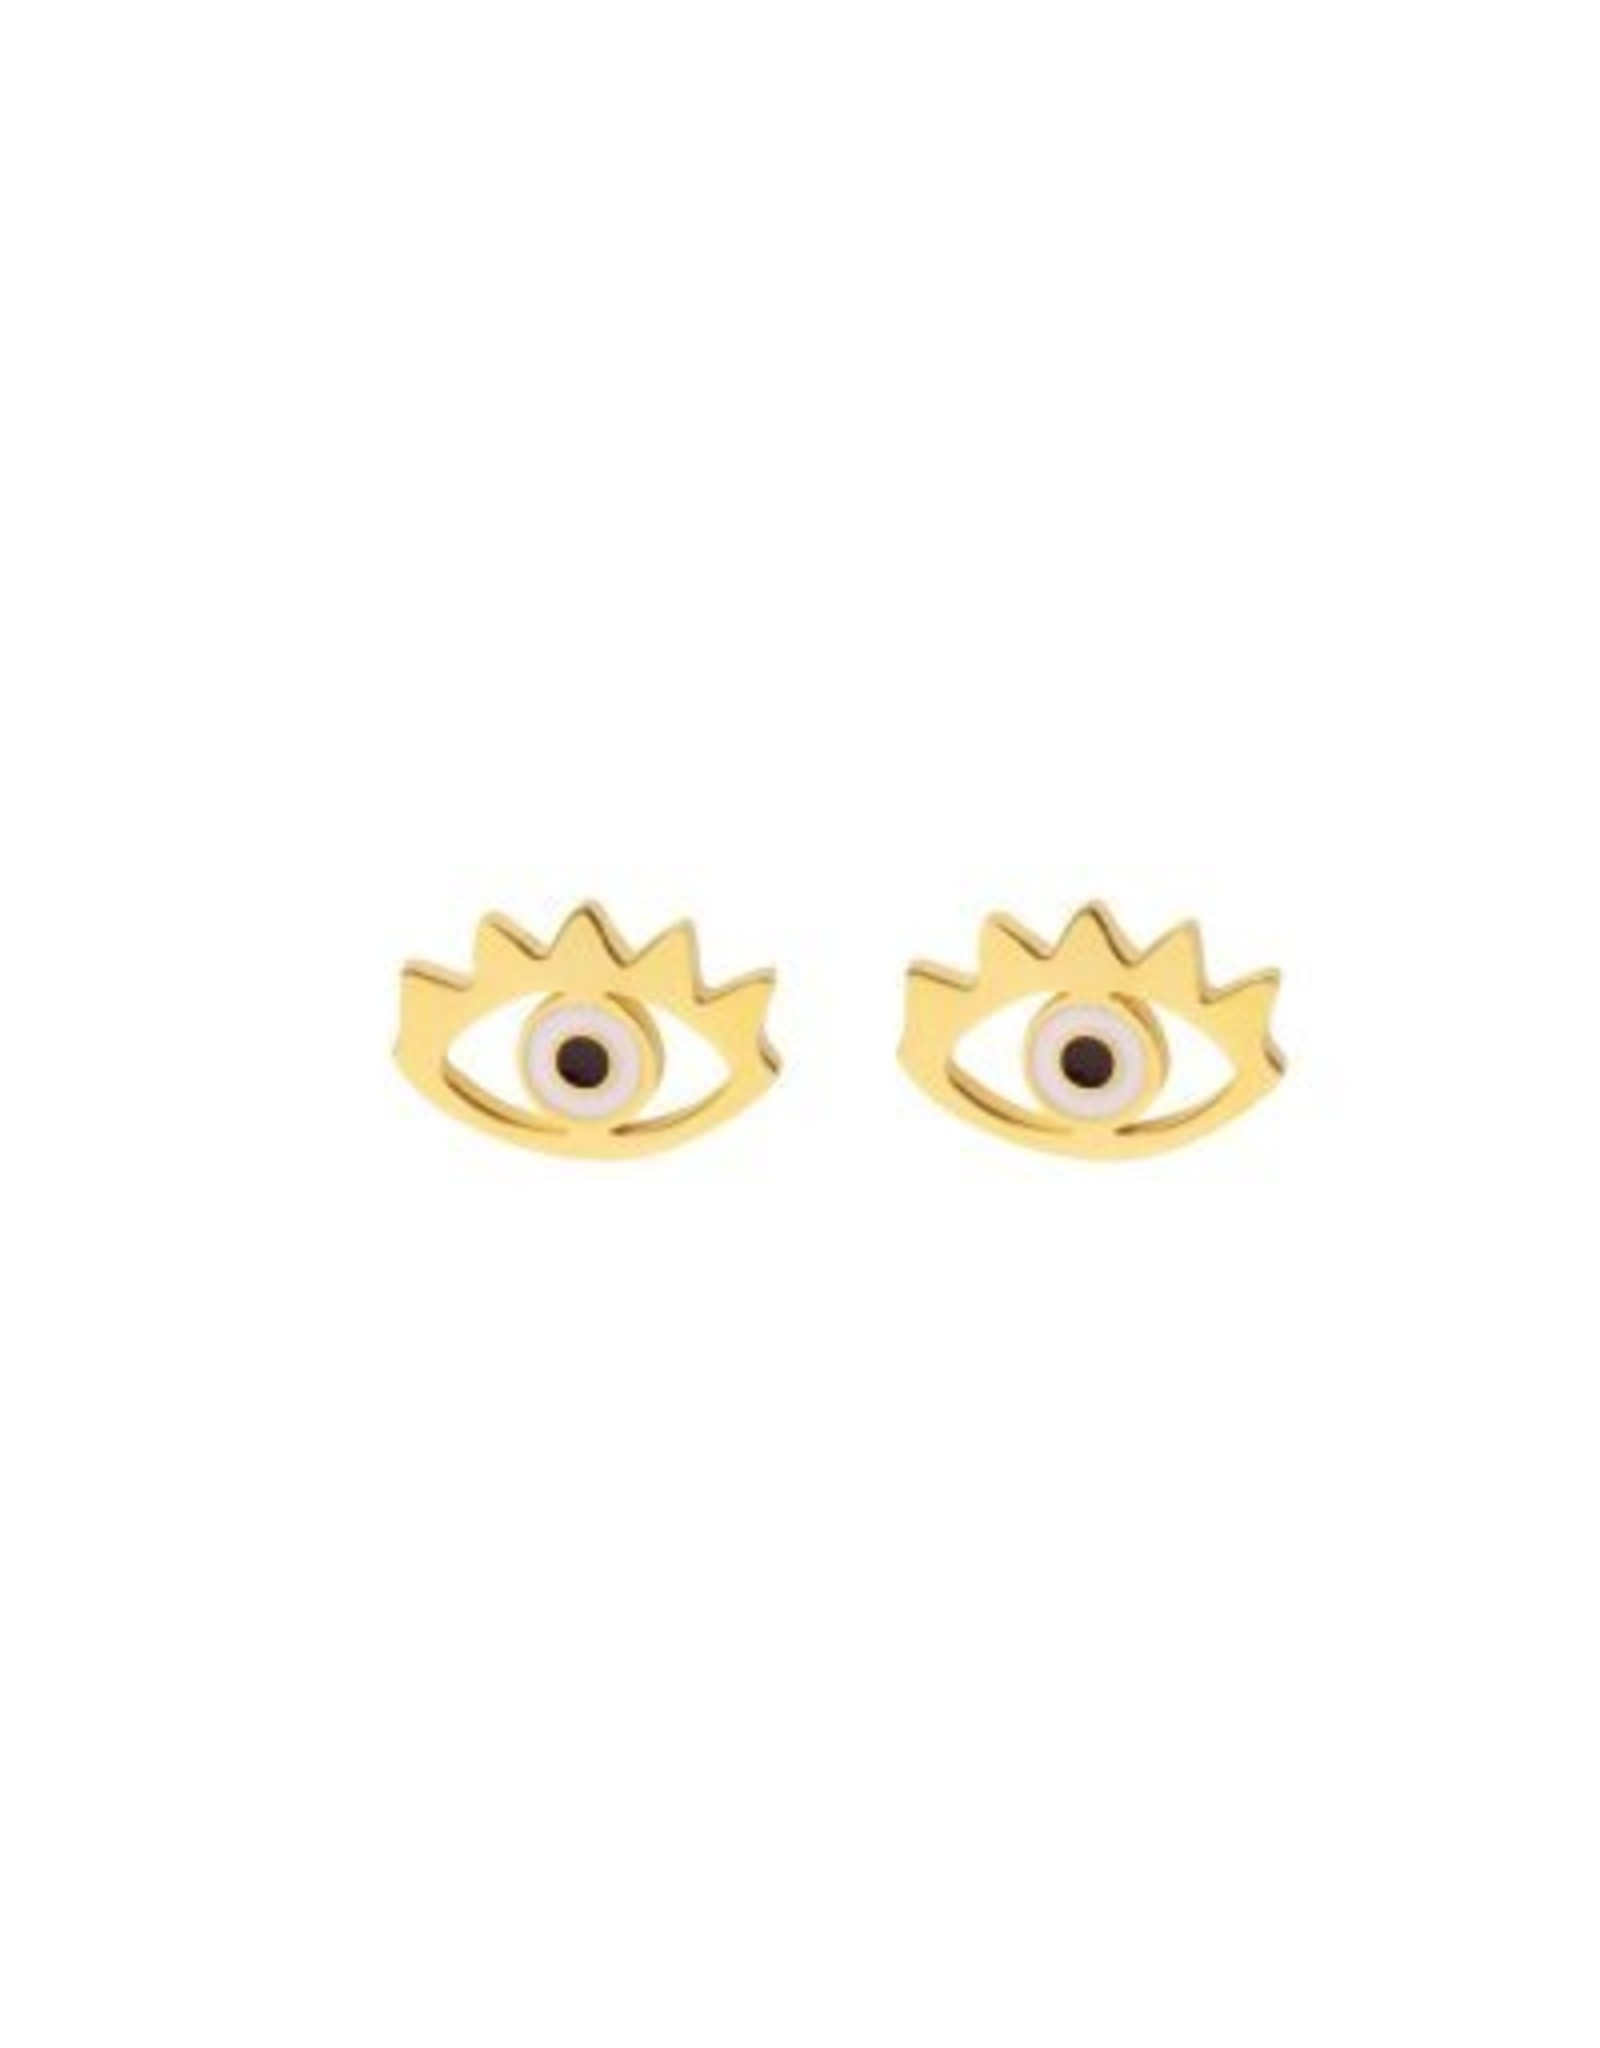 Eye earrings goud